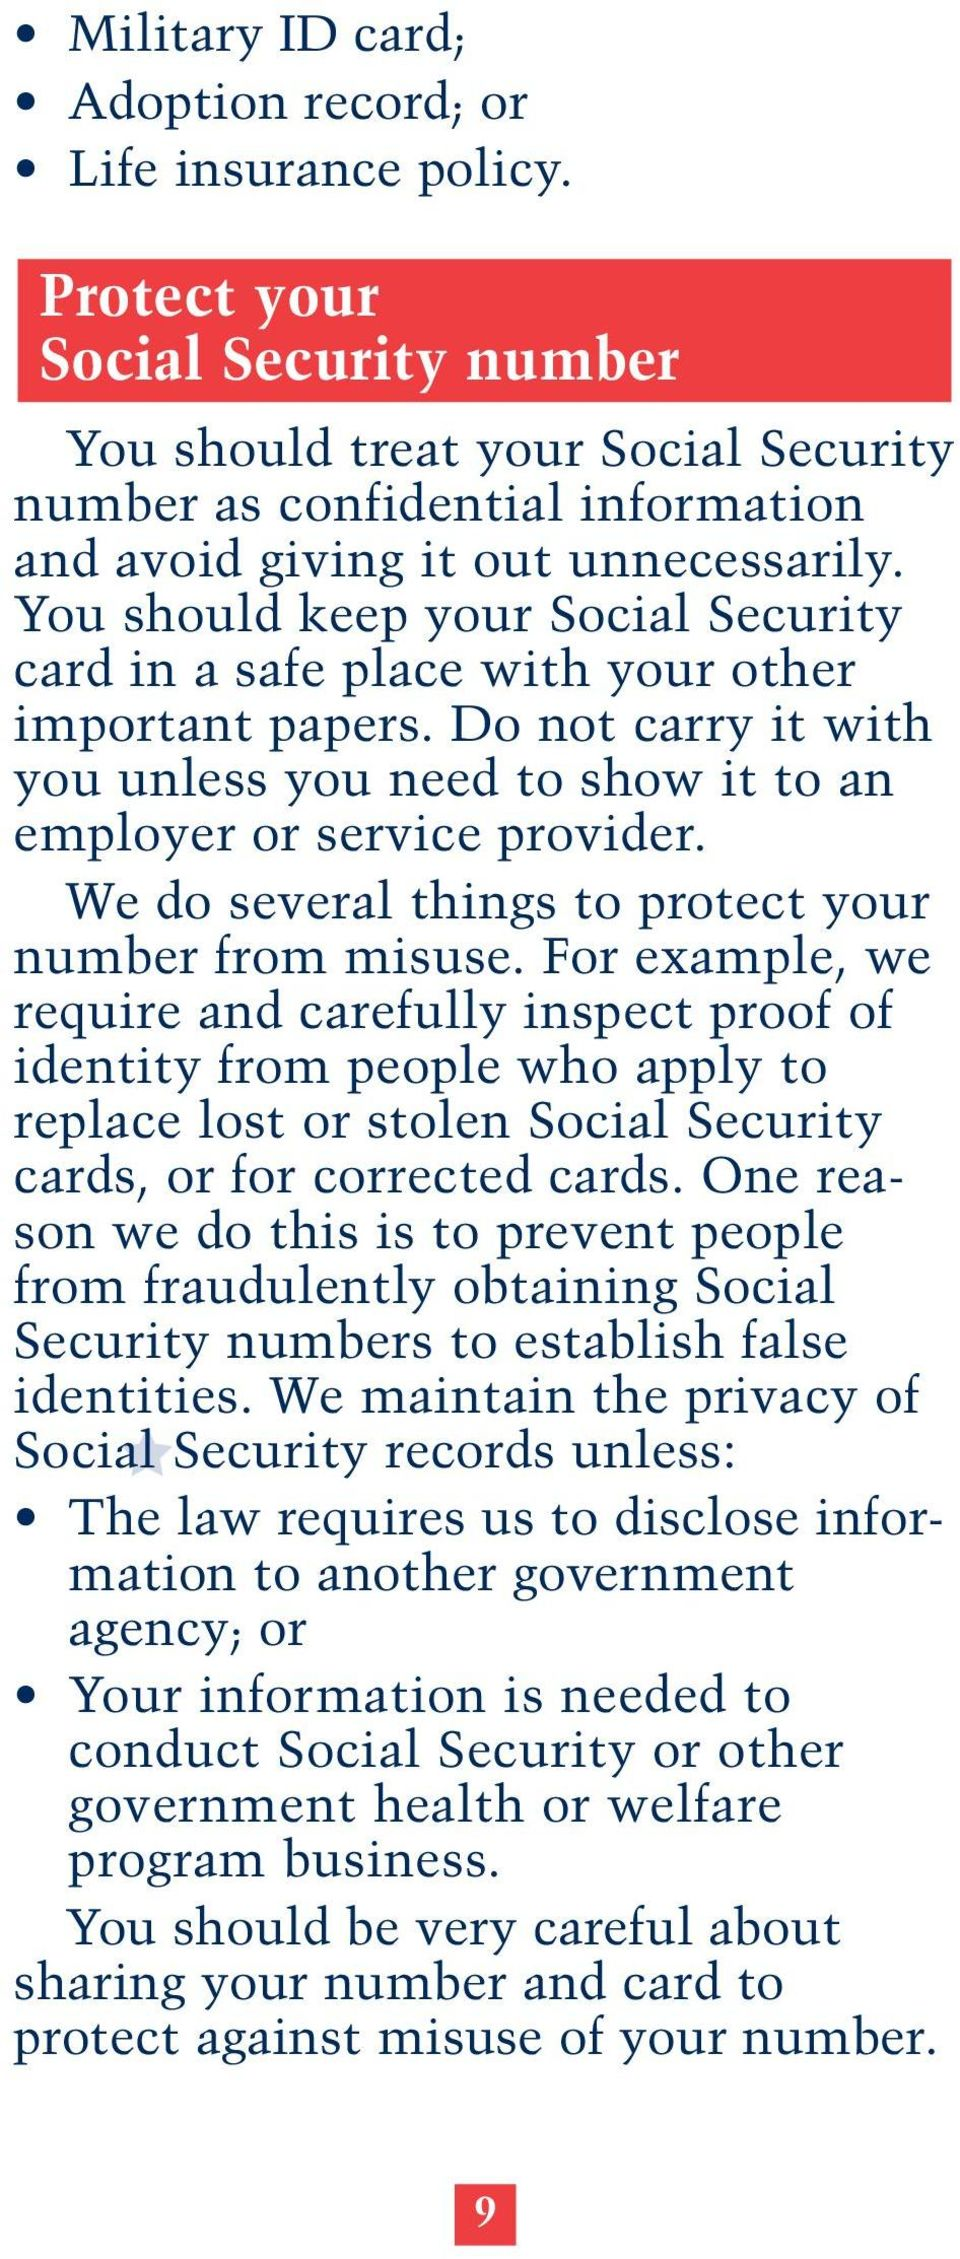 You should keep your Social Security card in a safe place with your other important papers. Do not carry it with you unless you need to show it to an employer or service provider.